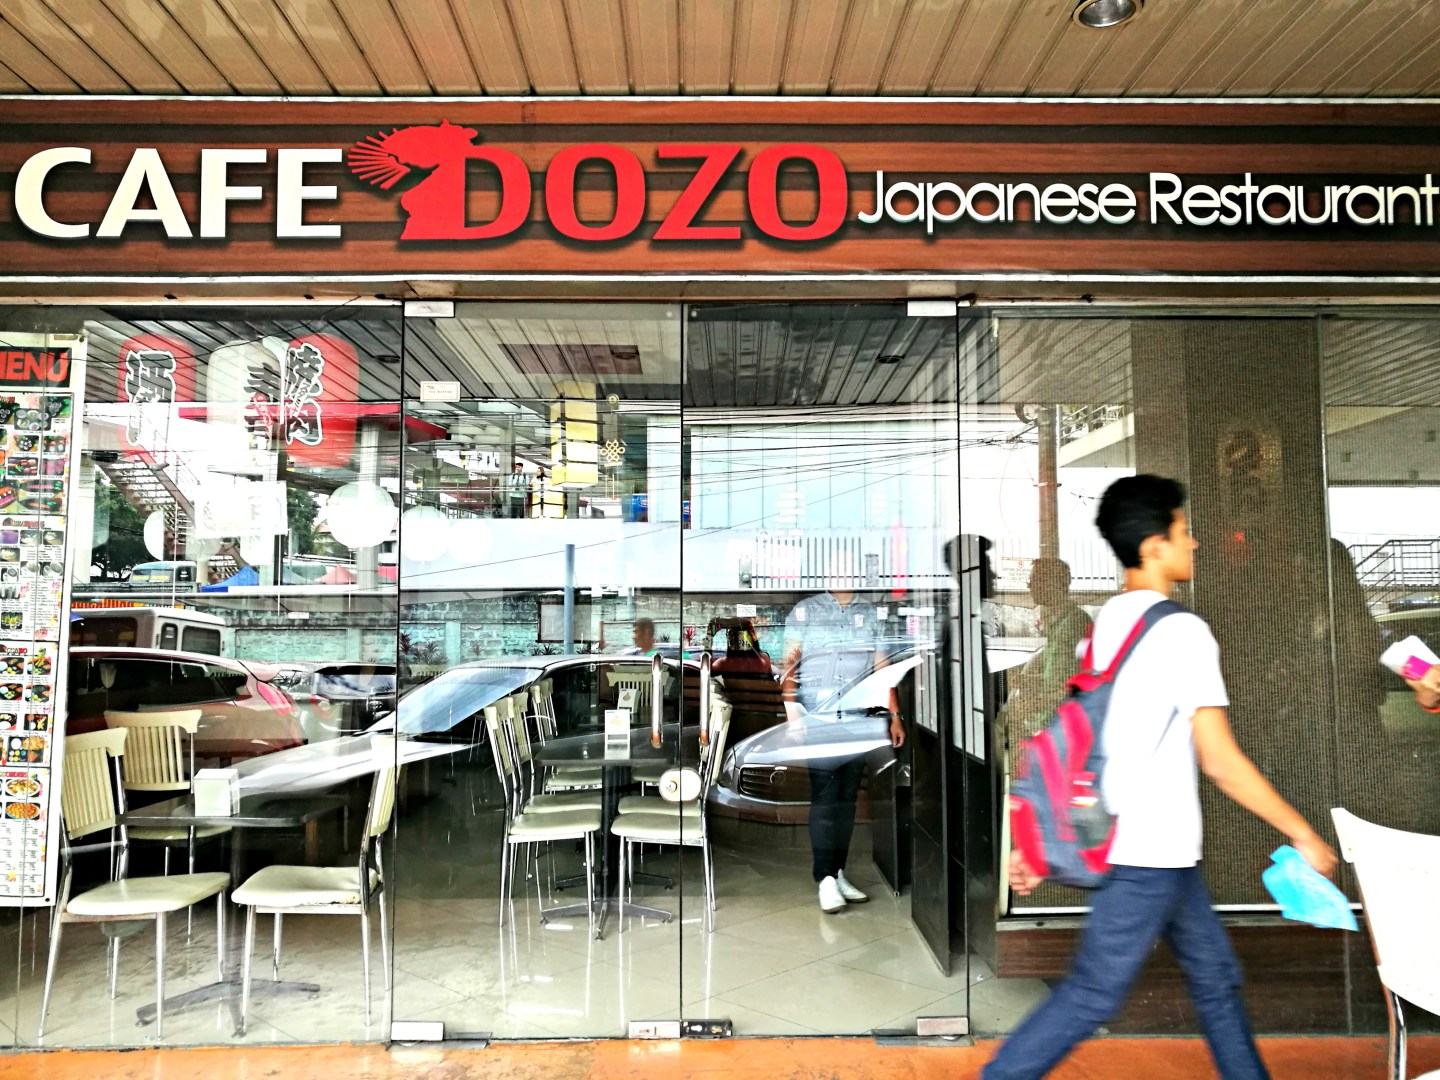 Cafe Dozo Japanese Restaurant By DailyWarriors